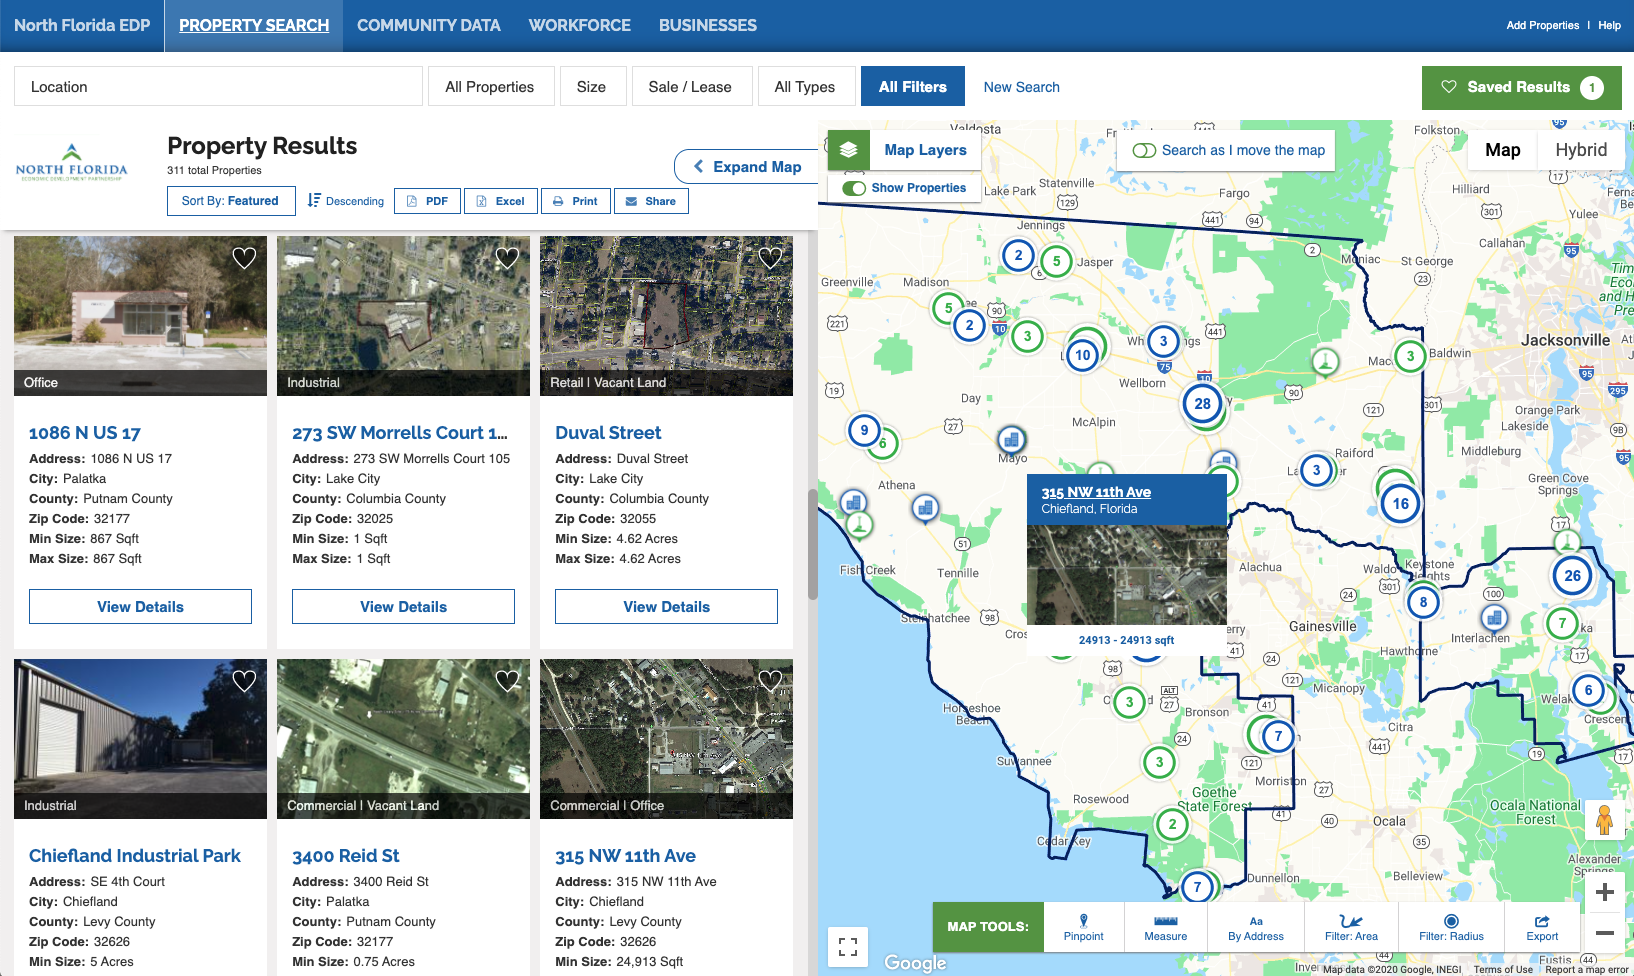 North Florida Economic Development Partnership online GIS data tool for site selection